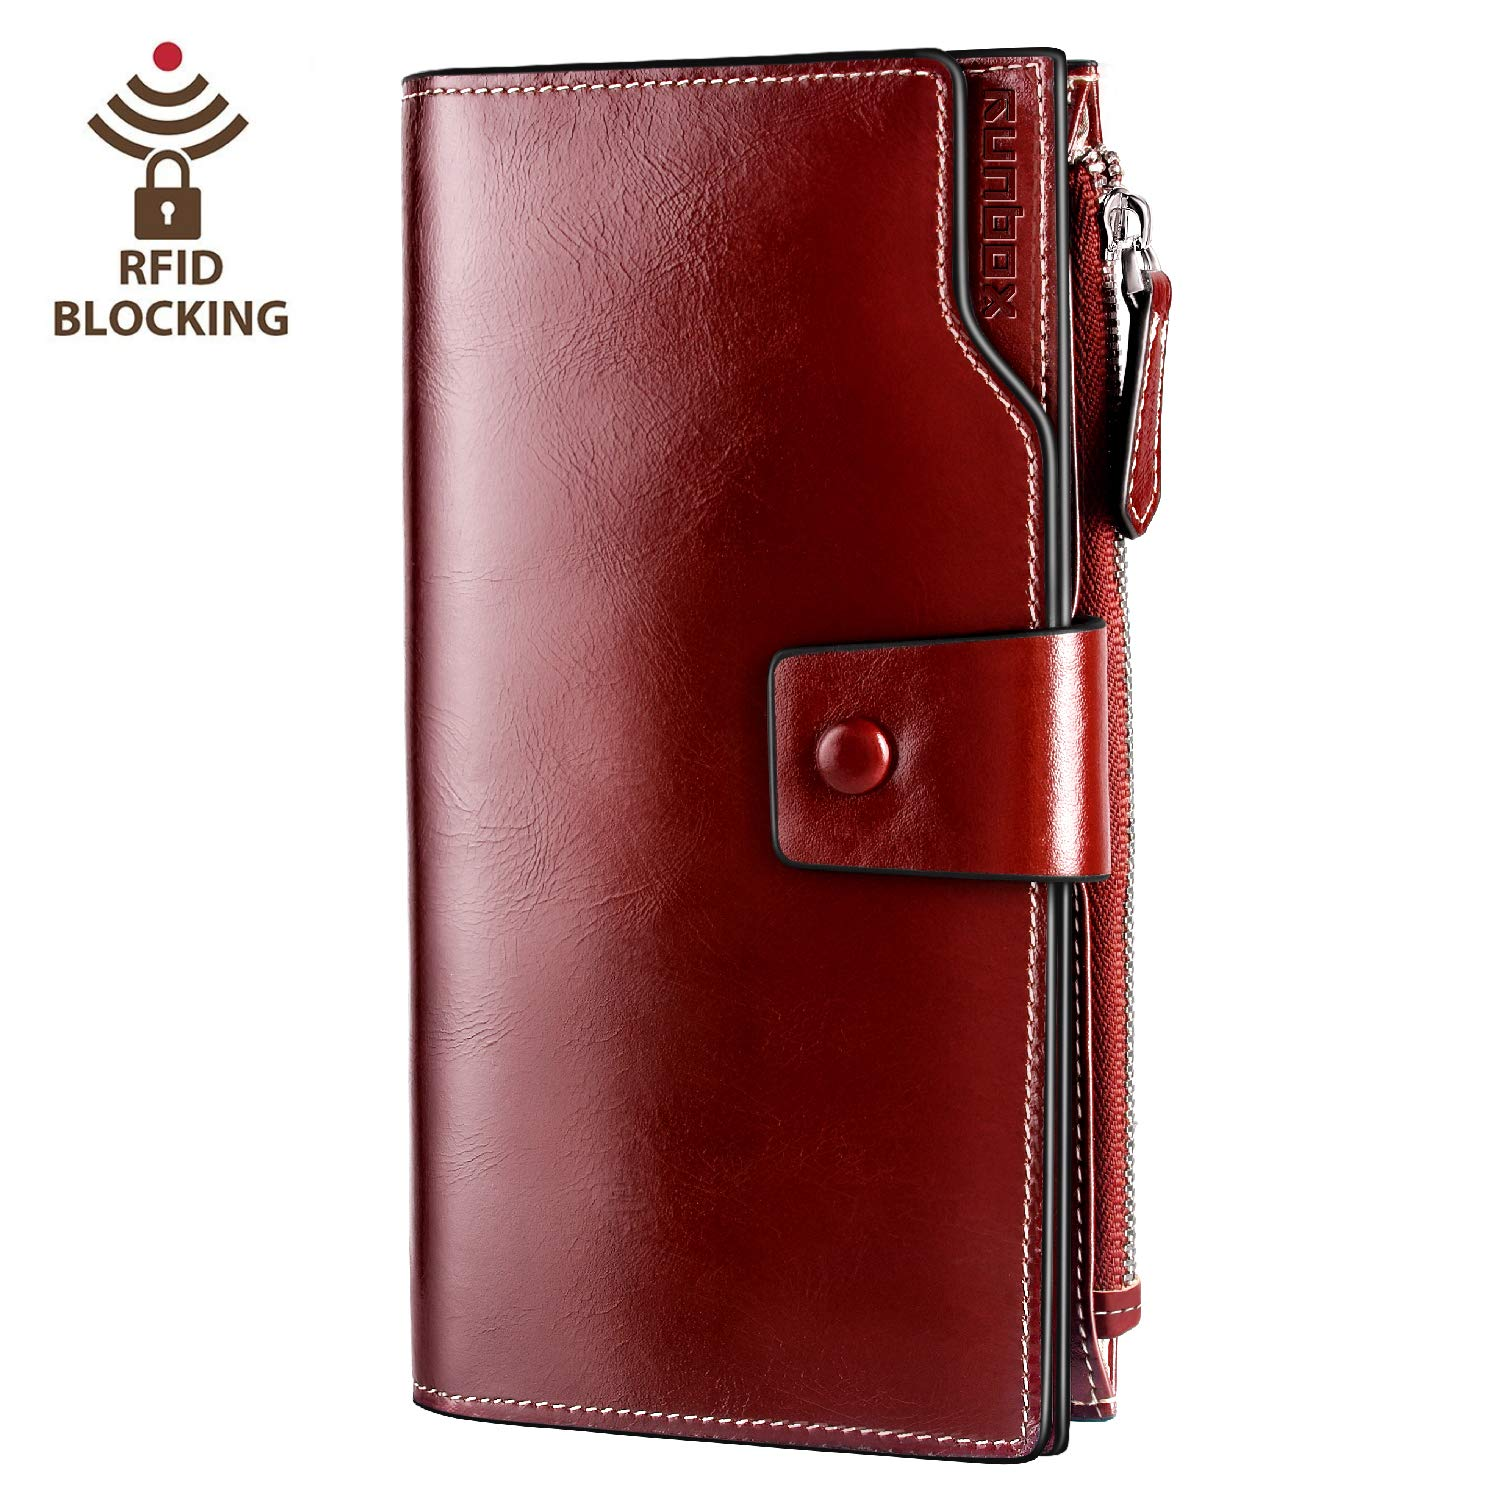 Women's RFID Blocking Large Capacity Luxury Wax Genuine Leather Clutch Wallet Card Holder by RUNBOX